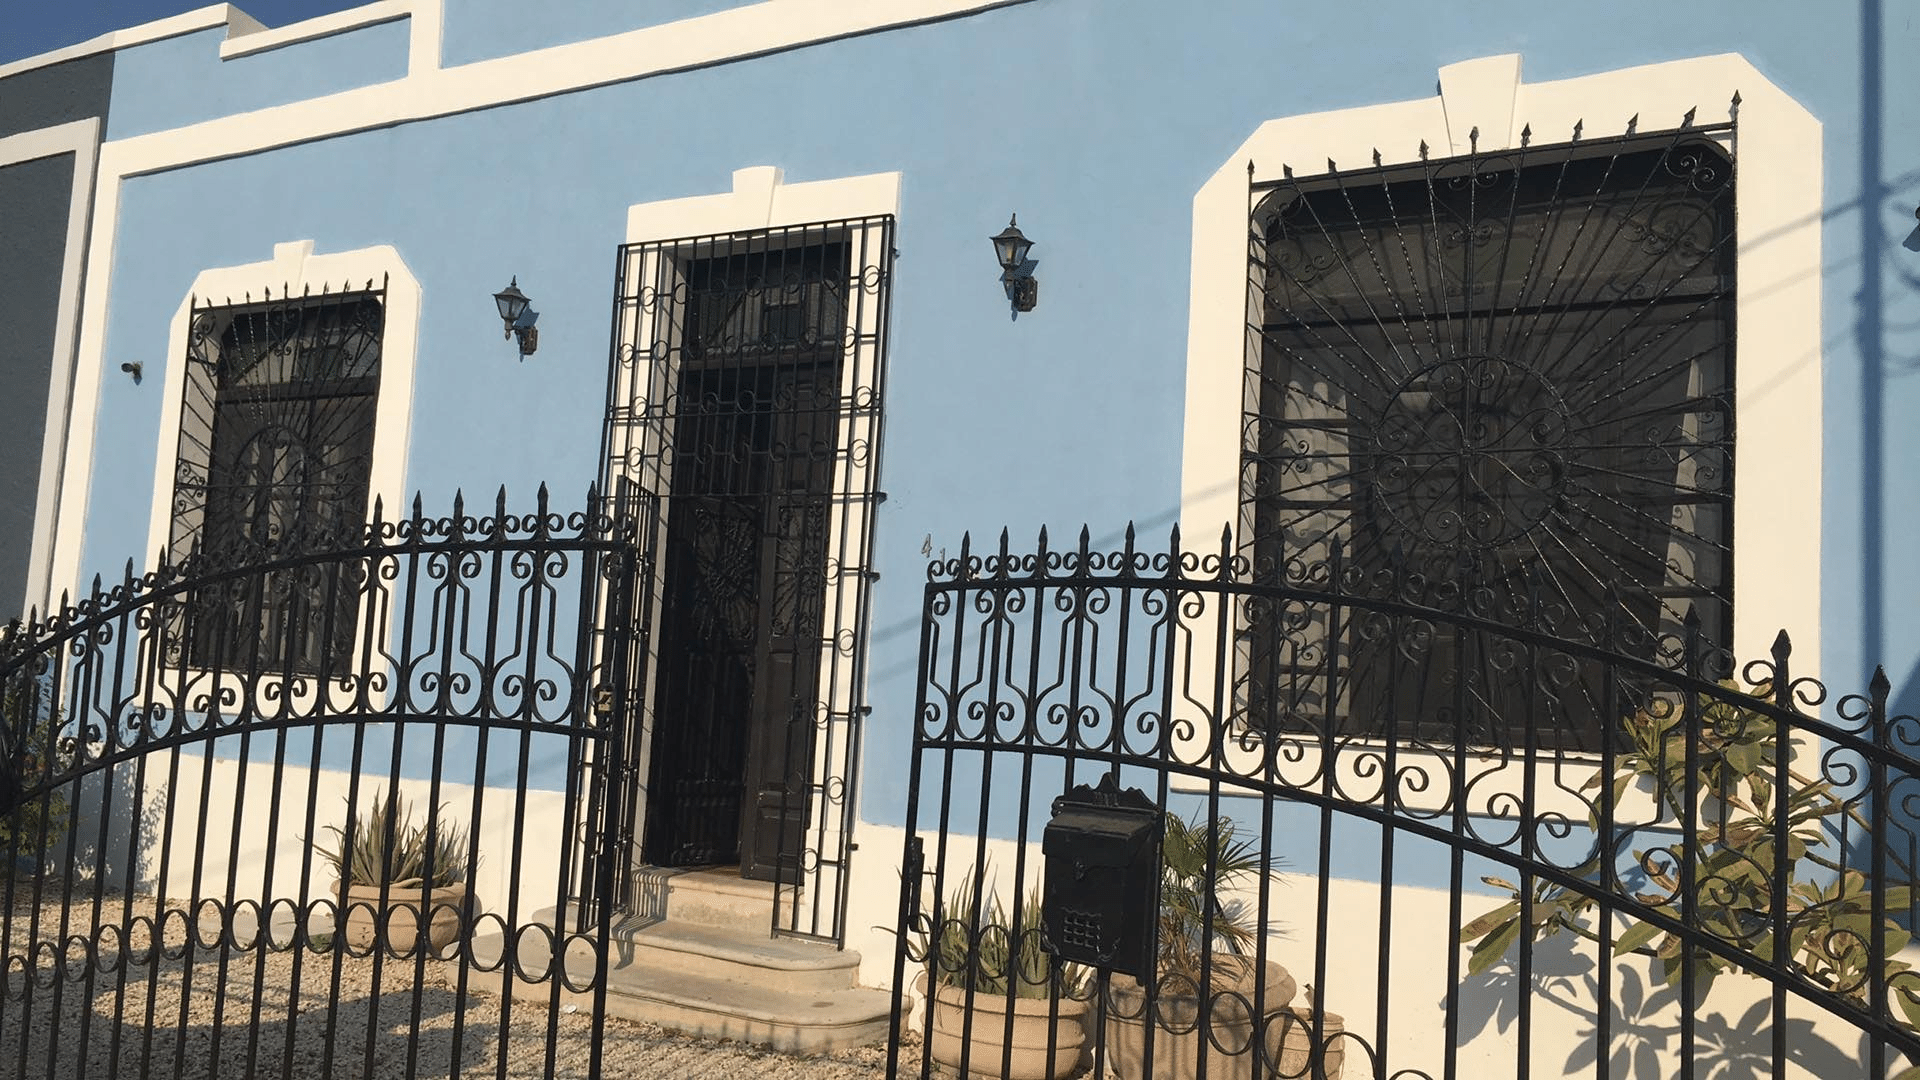 Introduction to Mérida Mexico: When? Where? What?